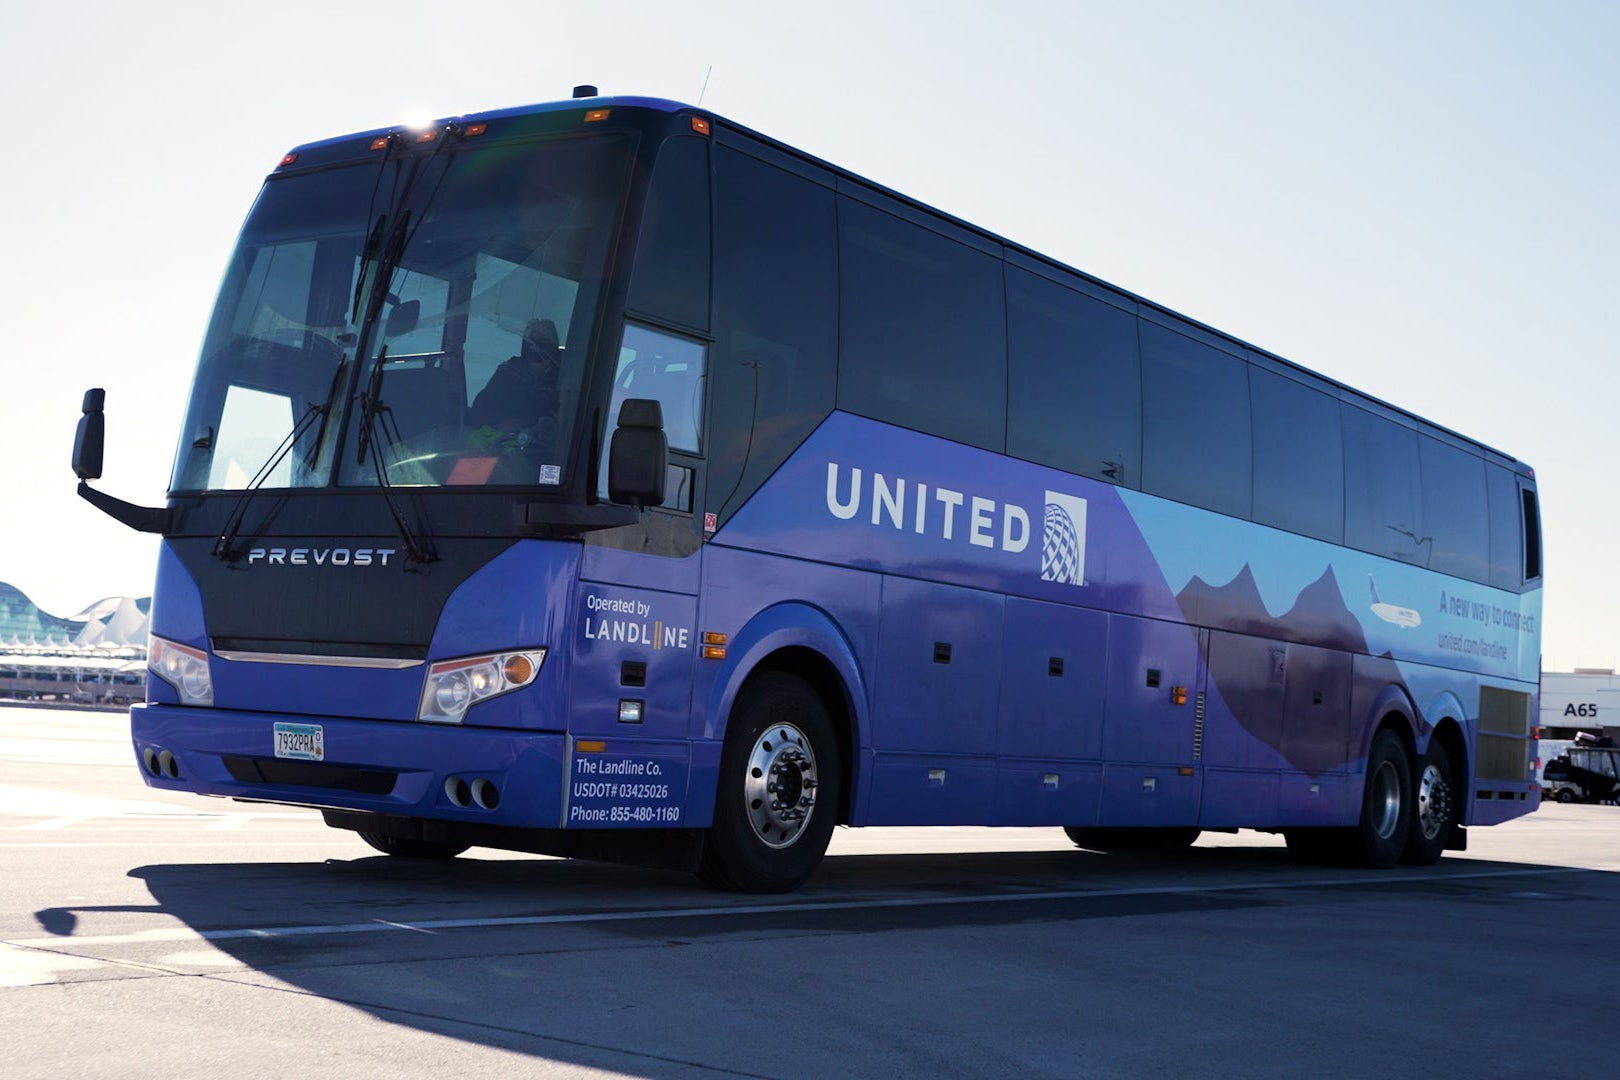 United adds one-stop bus service to 2 Colorado destinations